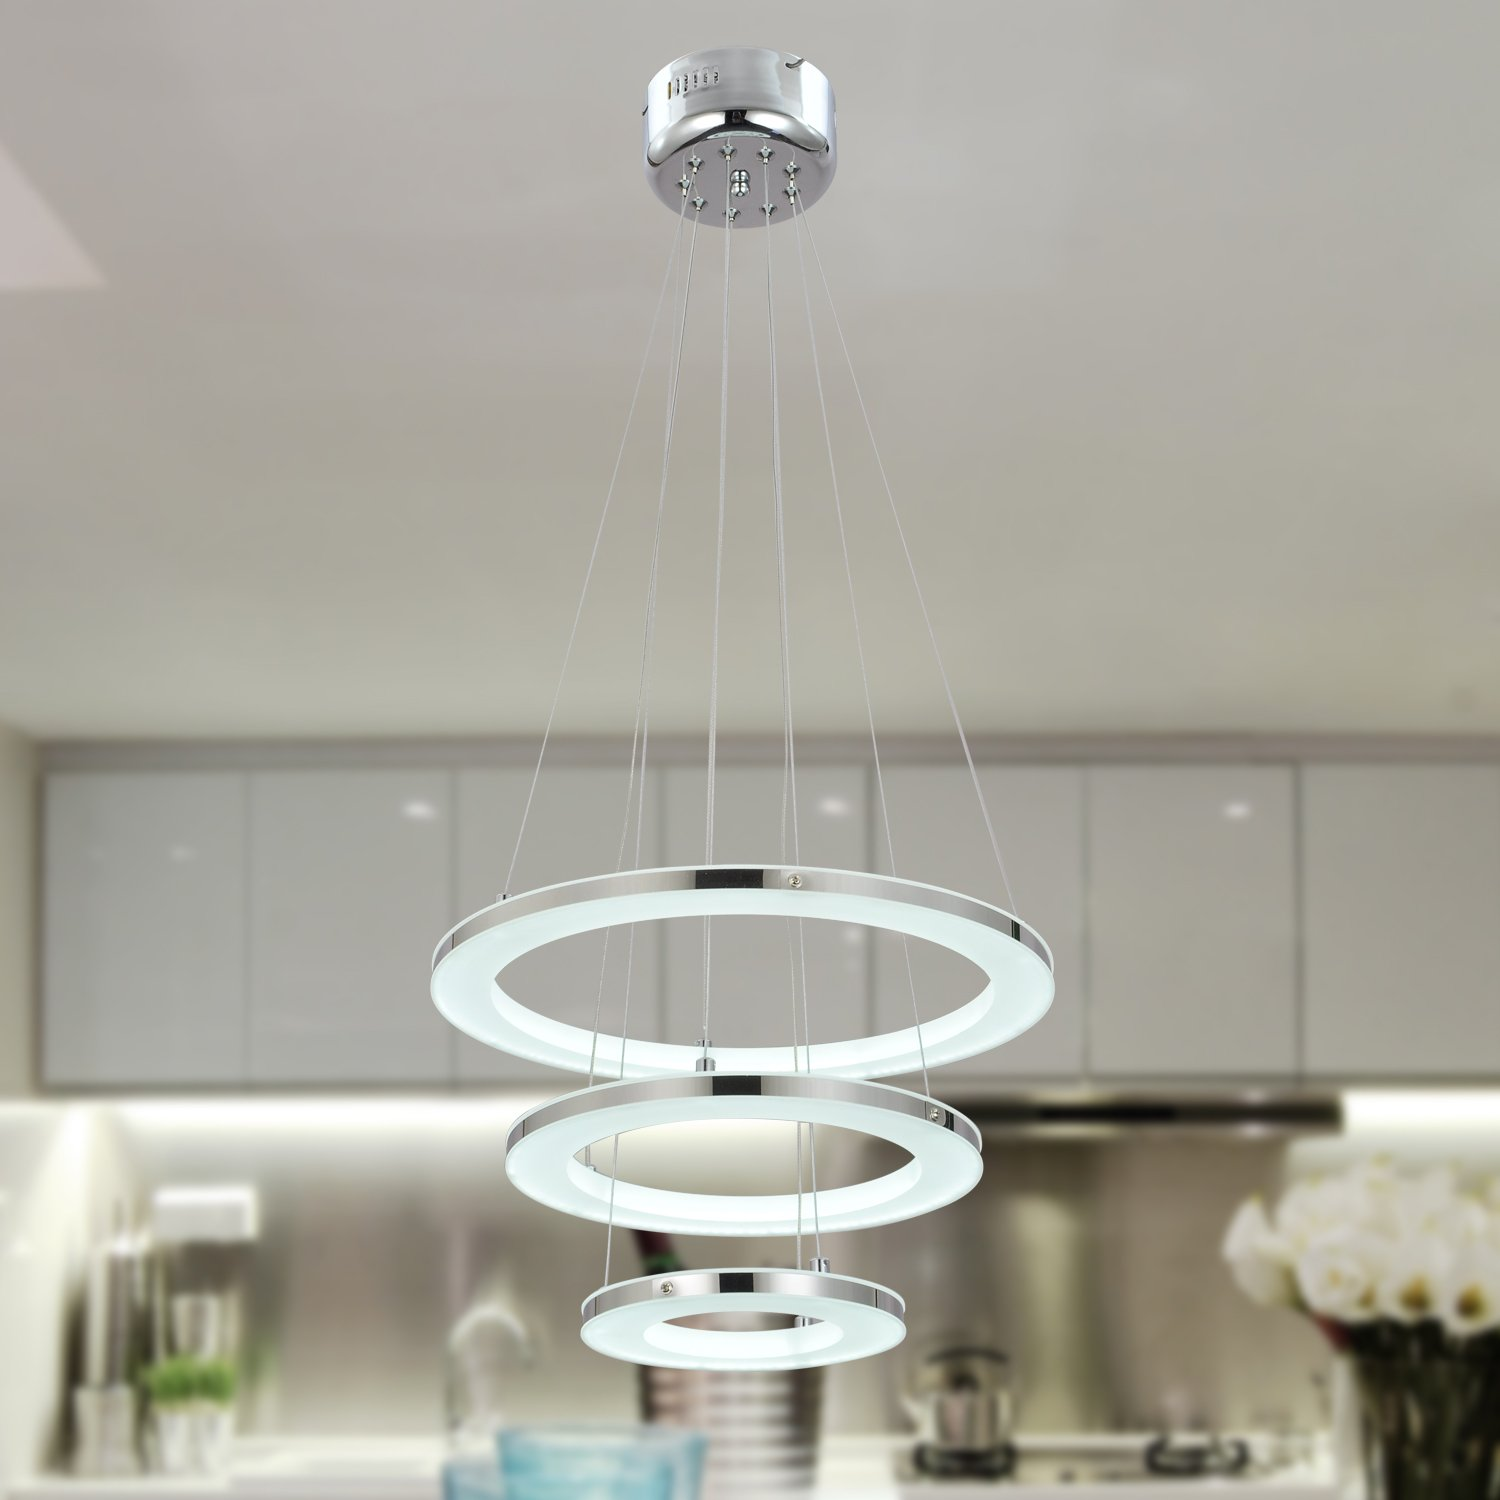 Unitary brand modern warm white led acrylic pendant light with 3 unitary brand modern warm white led acrylic pendant light with 3 rings max 33w chrome finish amazon aloadofball